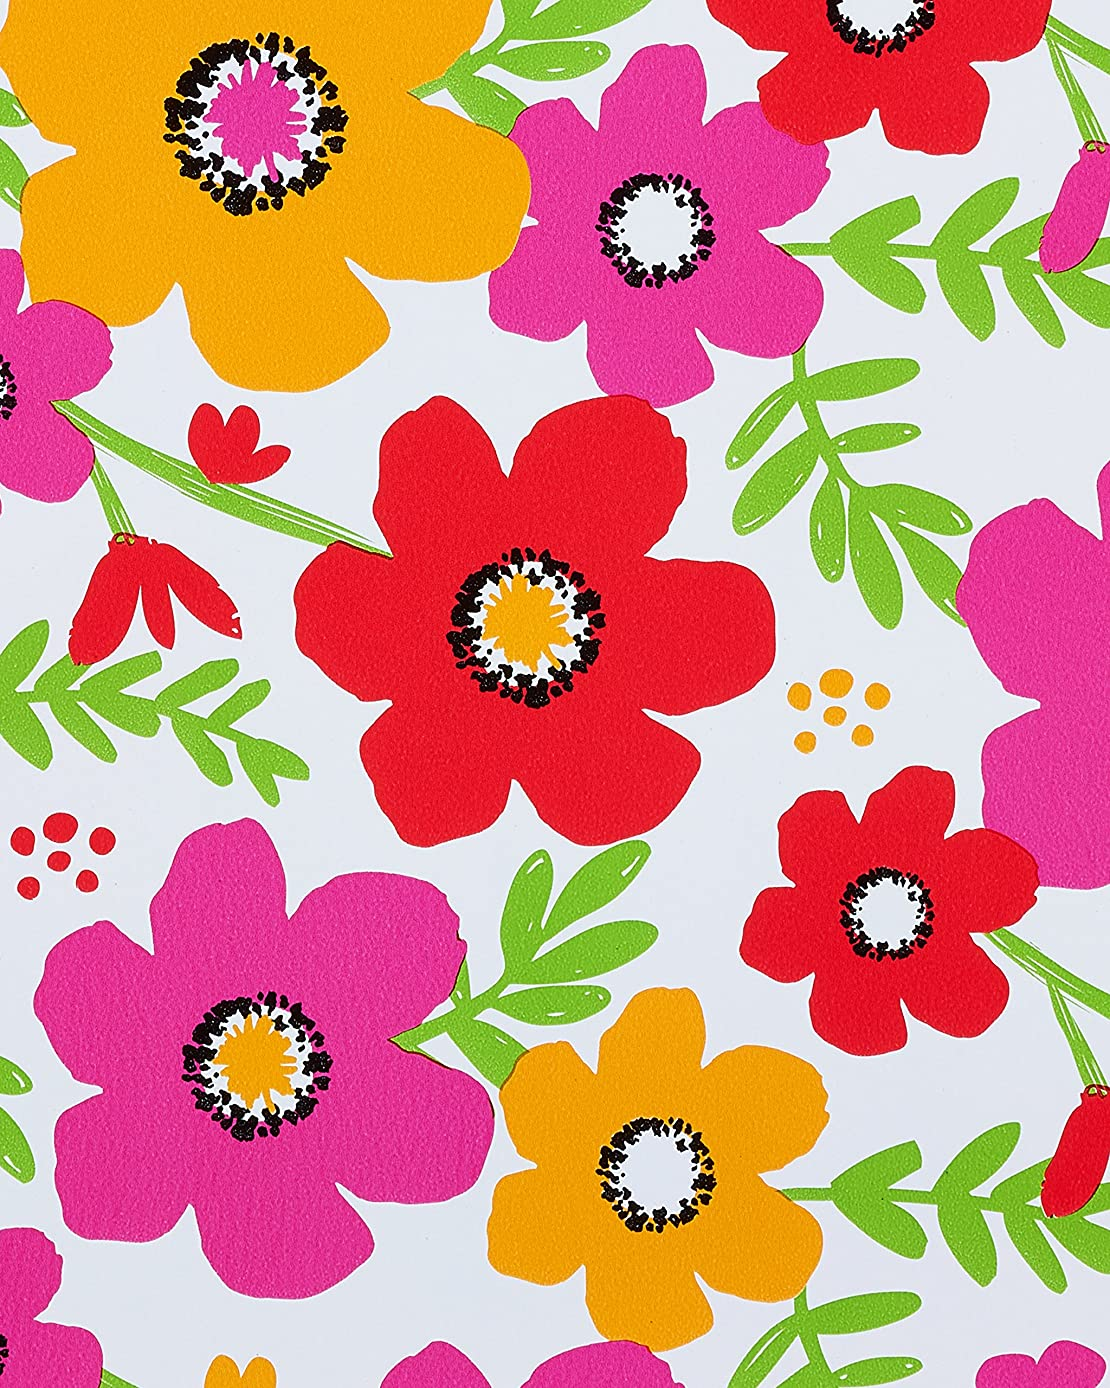 American Greetings Wrapping Paper, Fun Floral Pattern, 2.5' x 3'